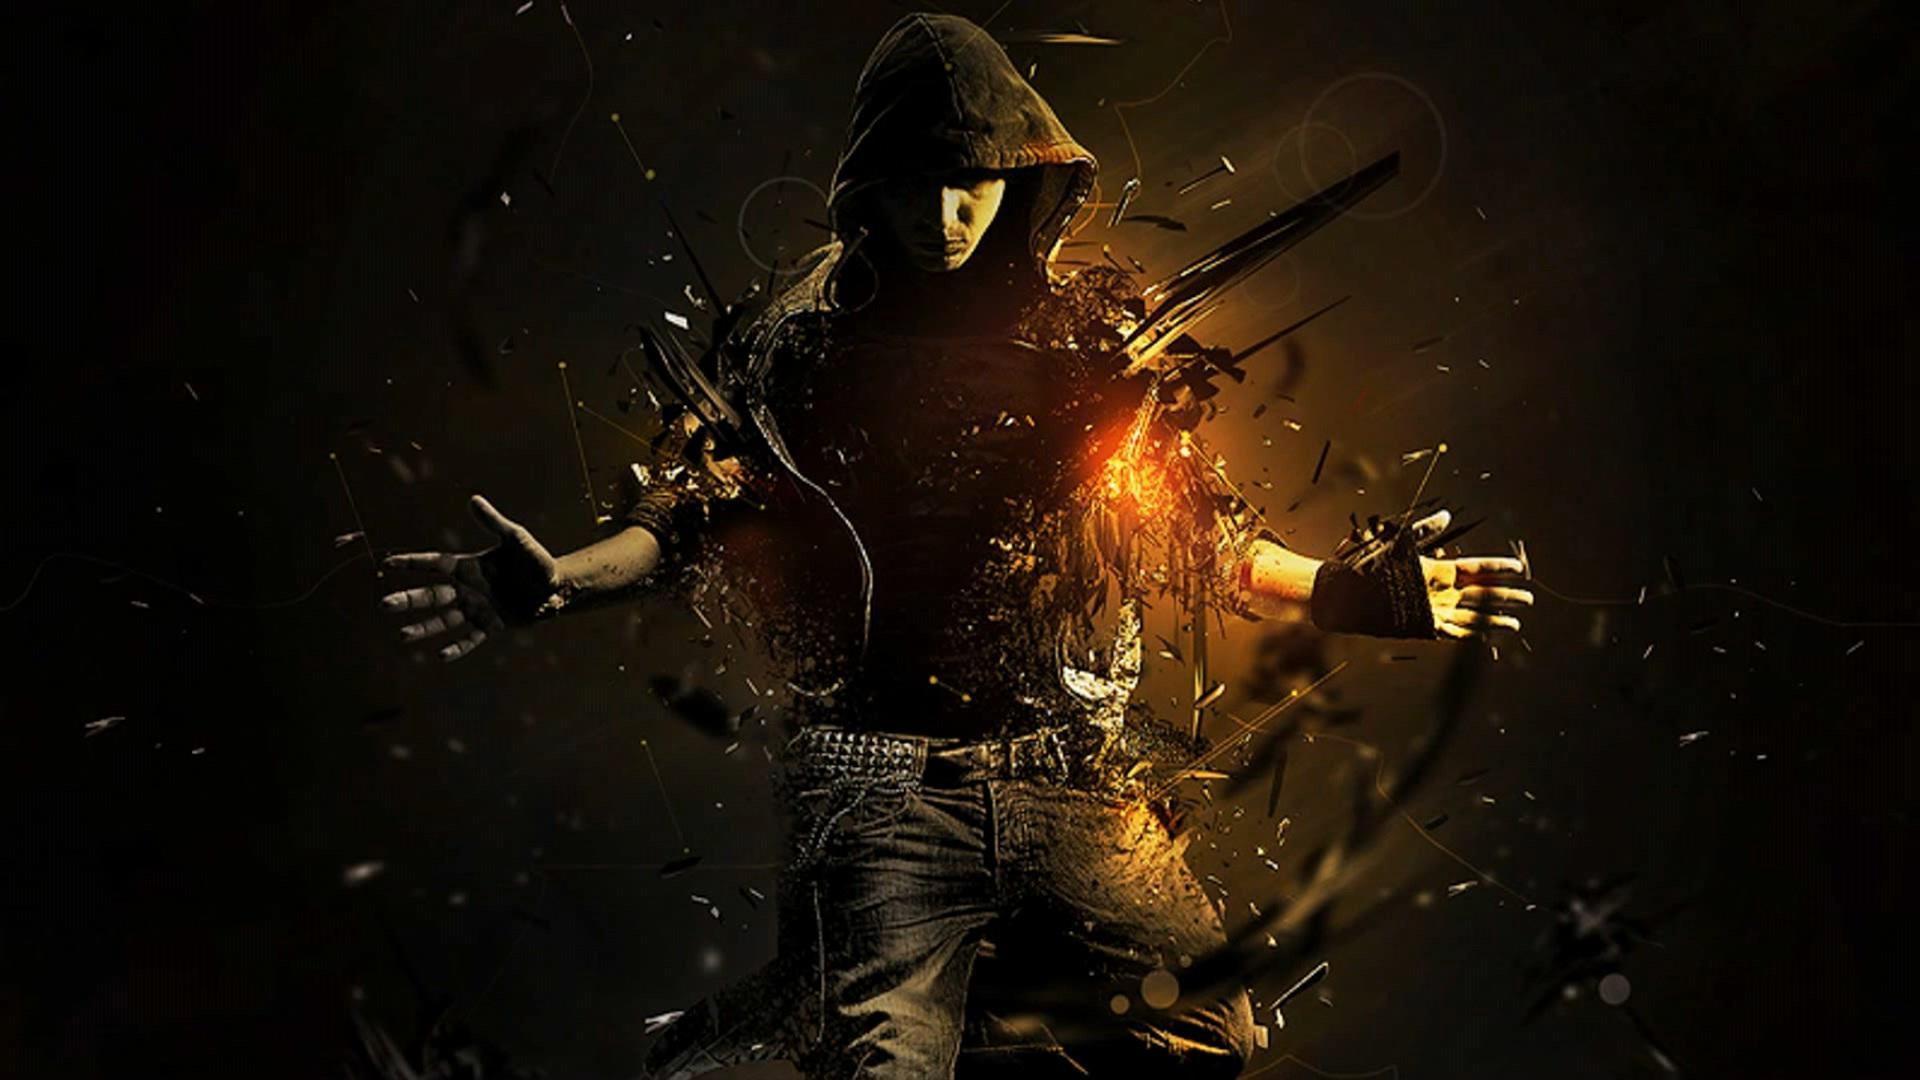 Cool Hd Wallpapers For Boys Wallpaper Cave